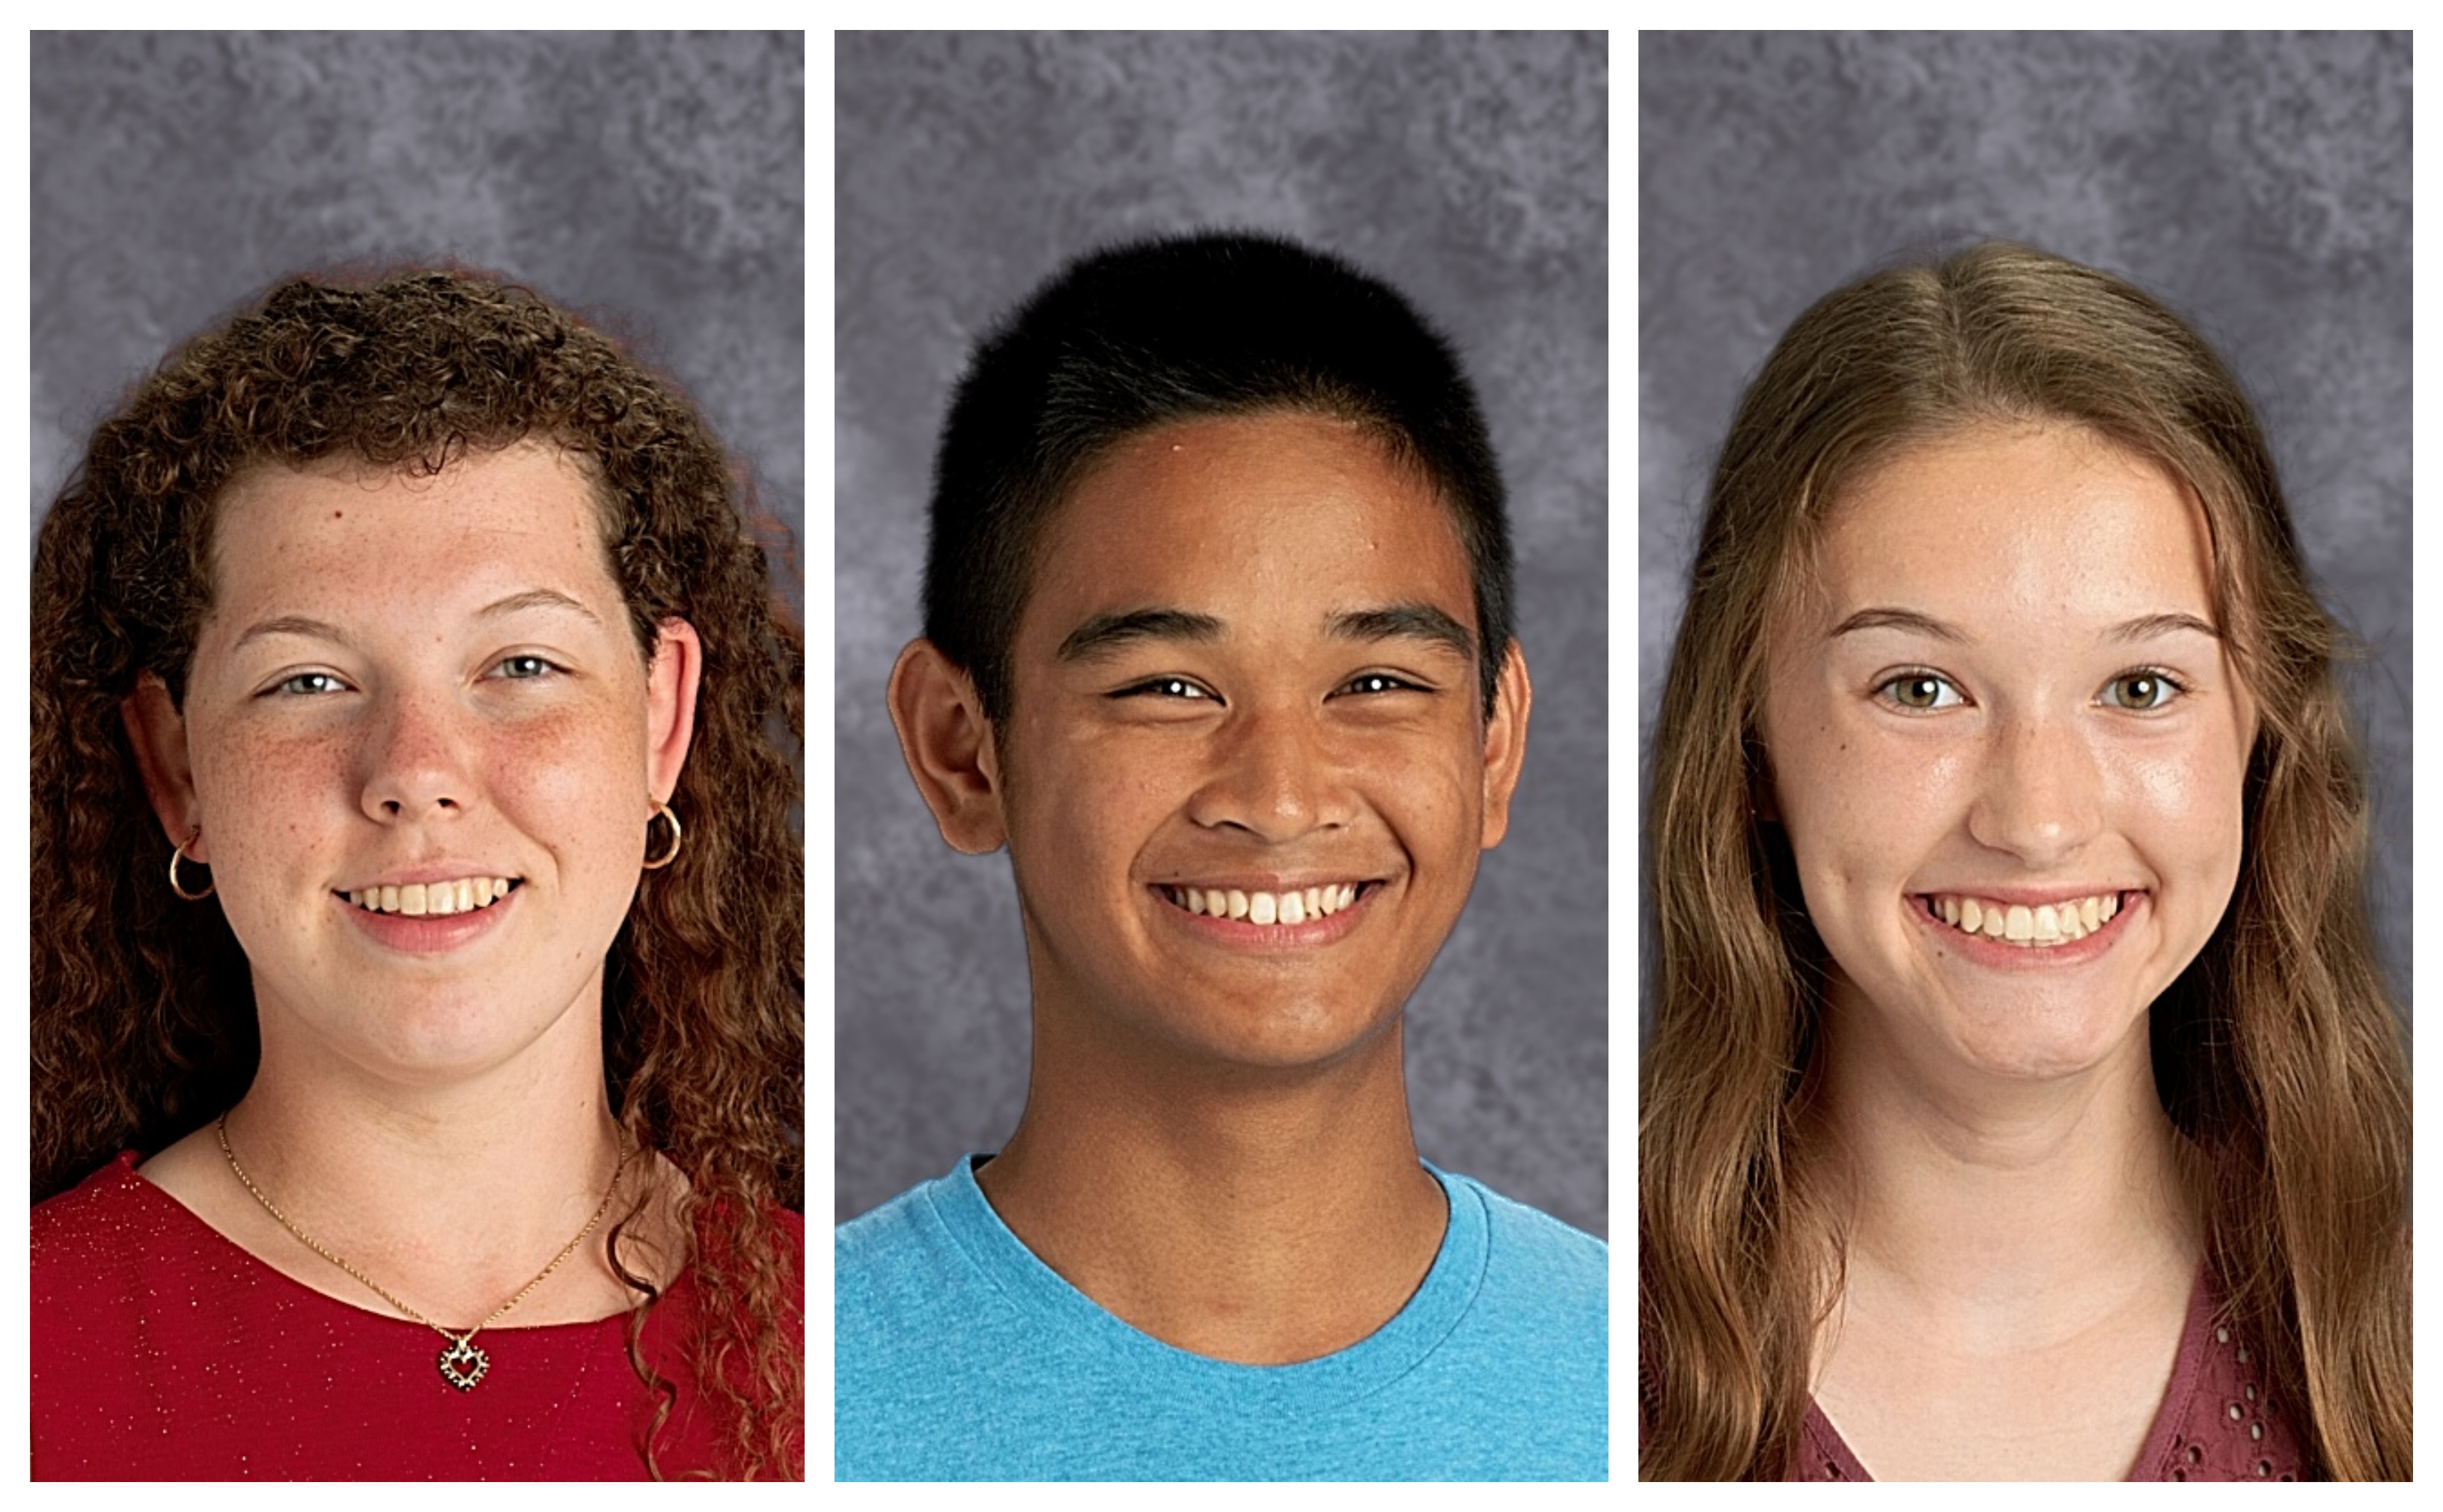 3 students chosen as National Merit Semi-Finalists, 2 as commended students